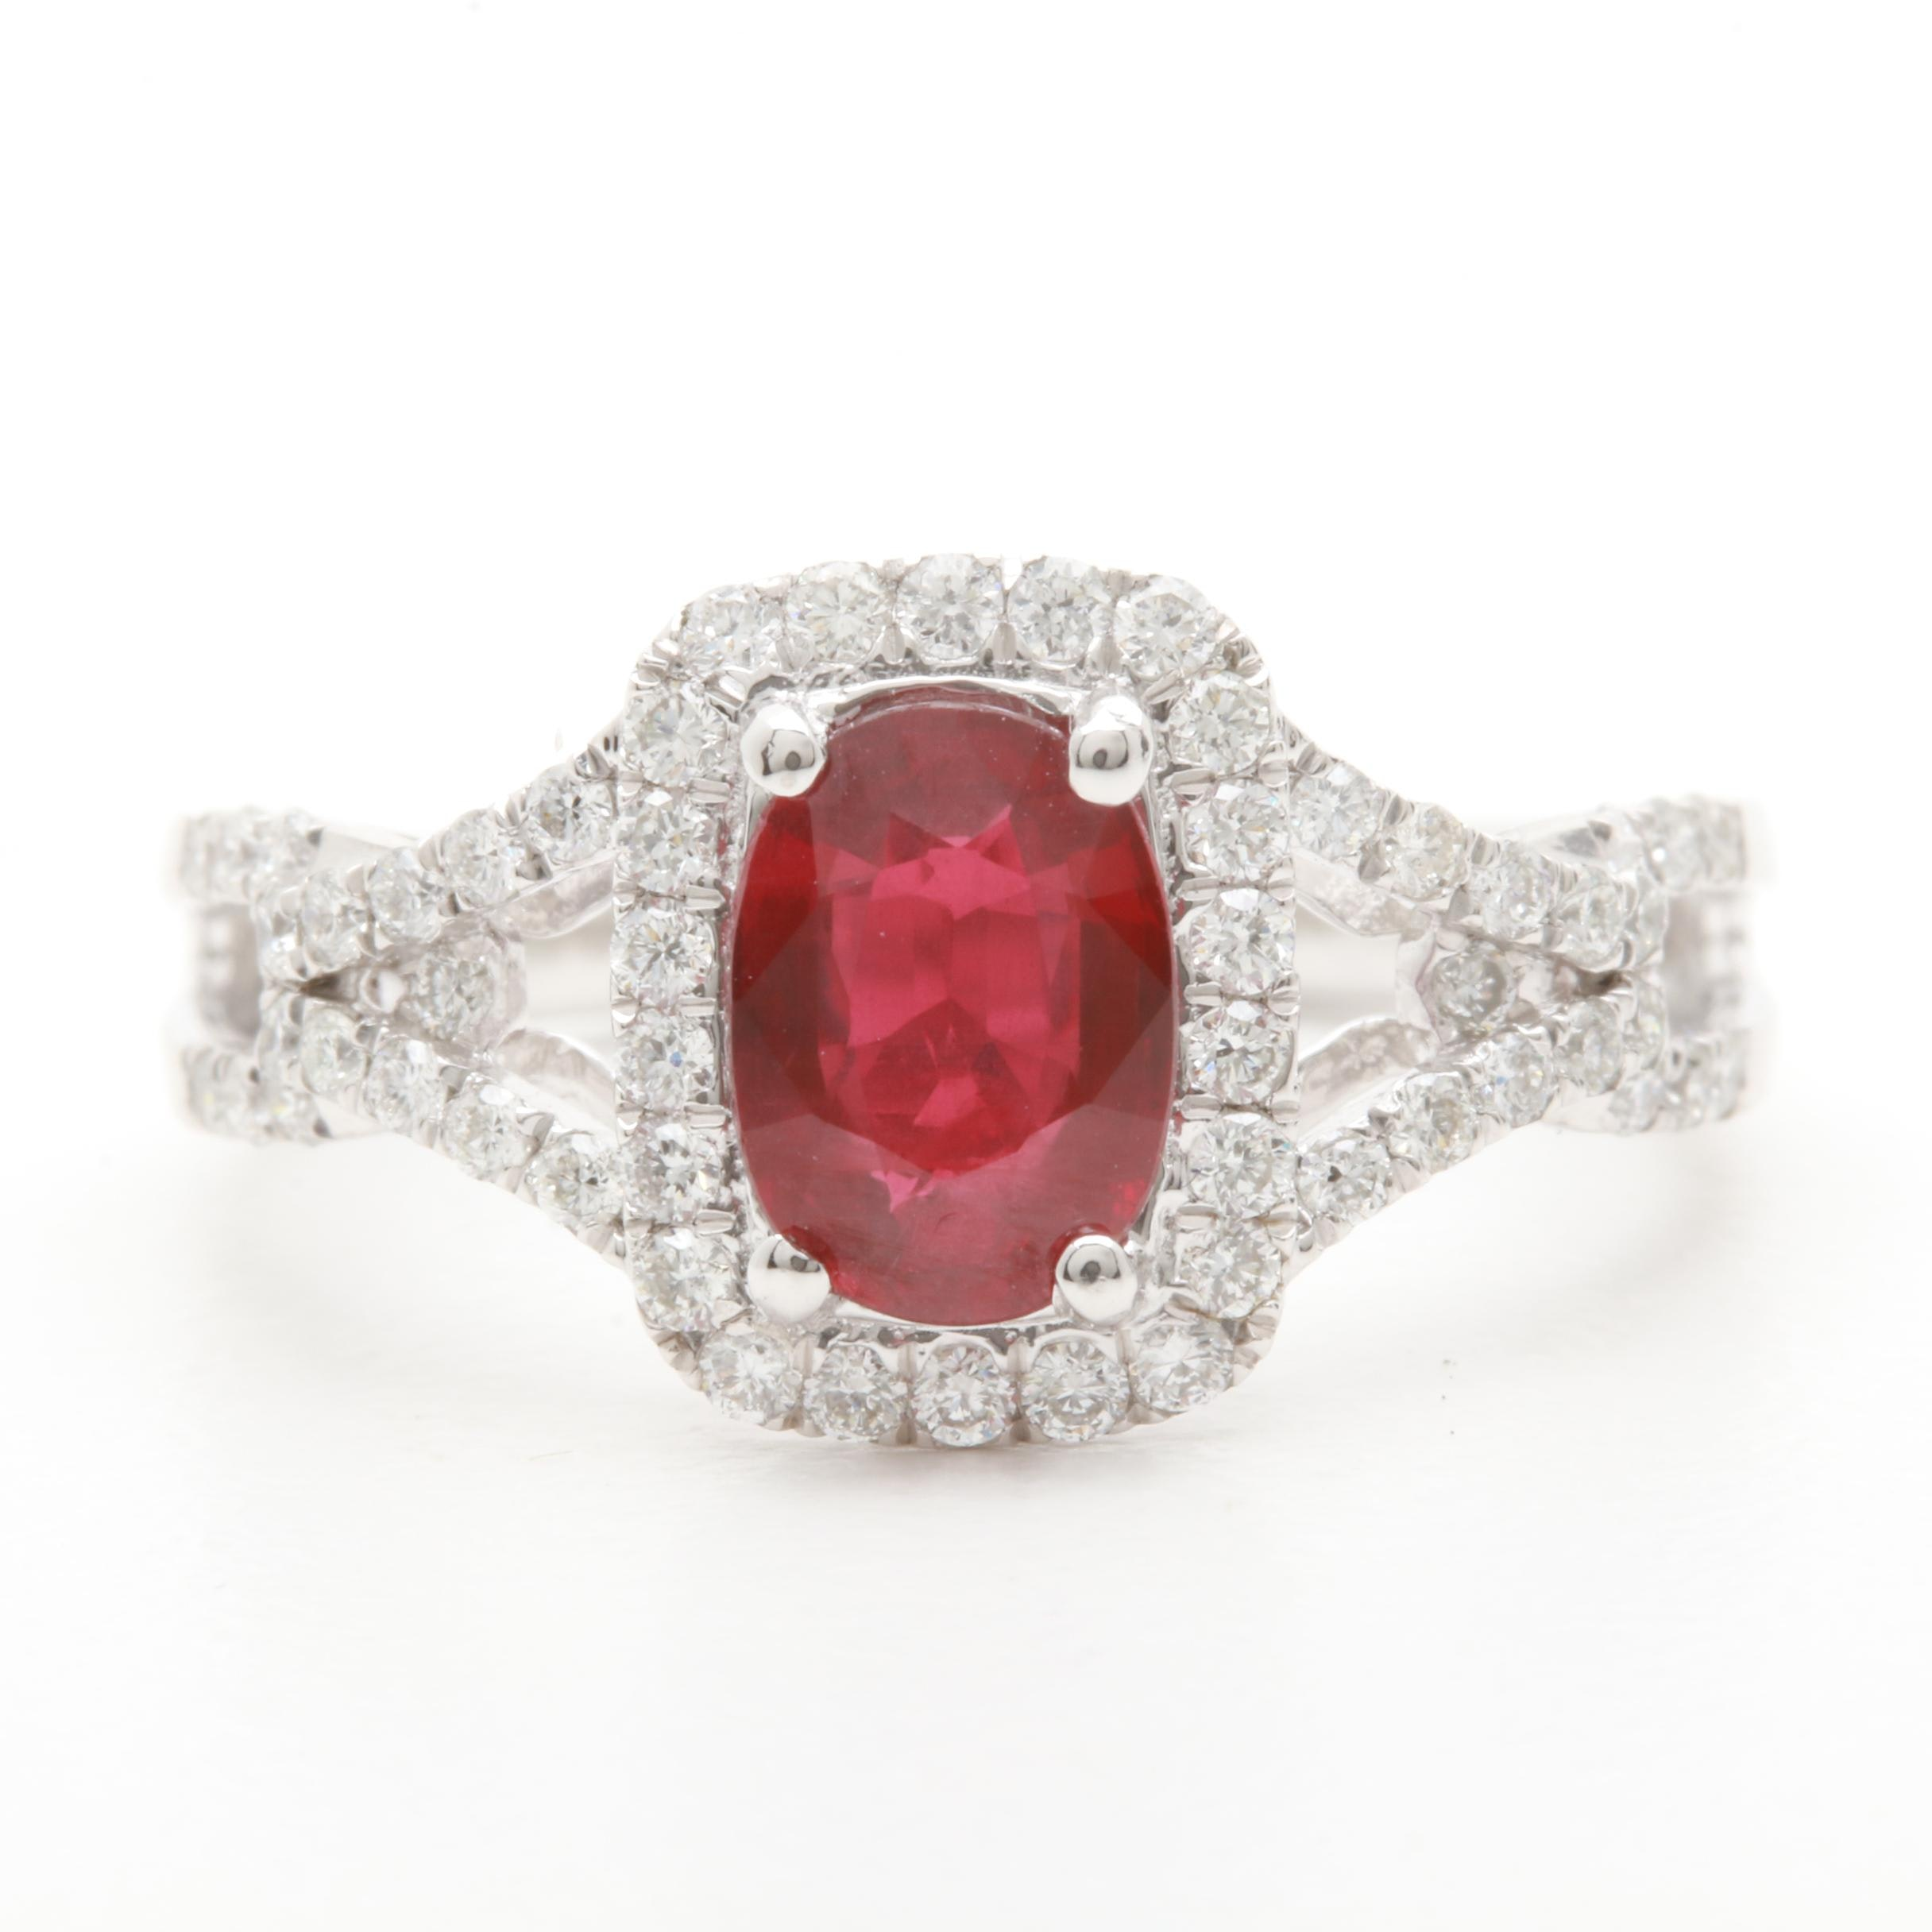 Platinum 1.43 CT Ruby and Diamond Ring with GIA Report